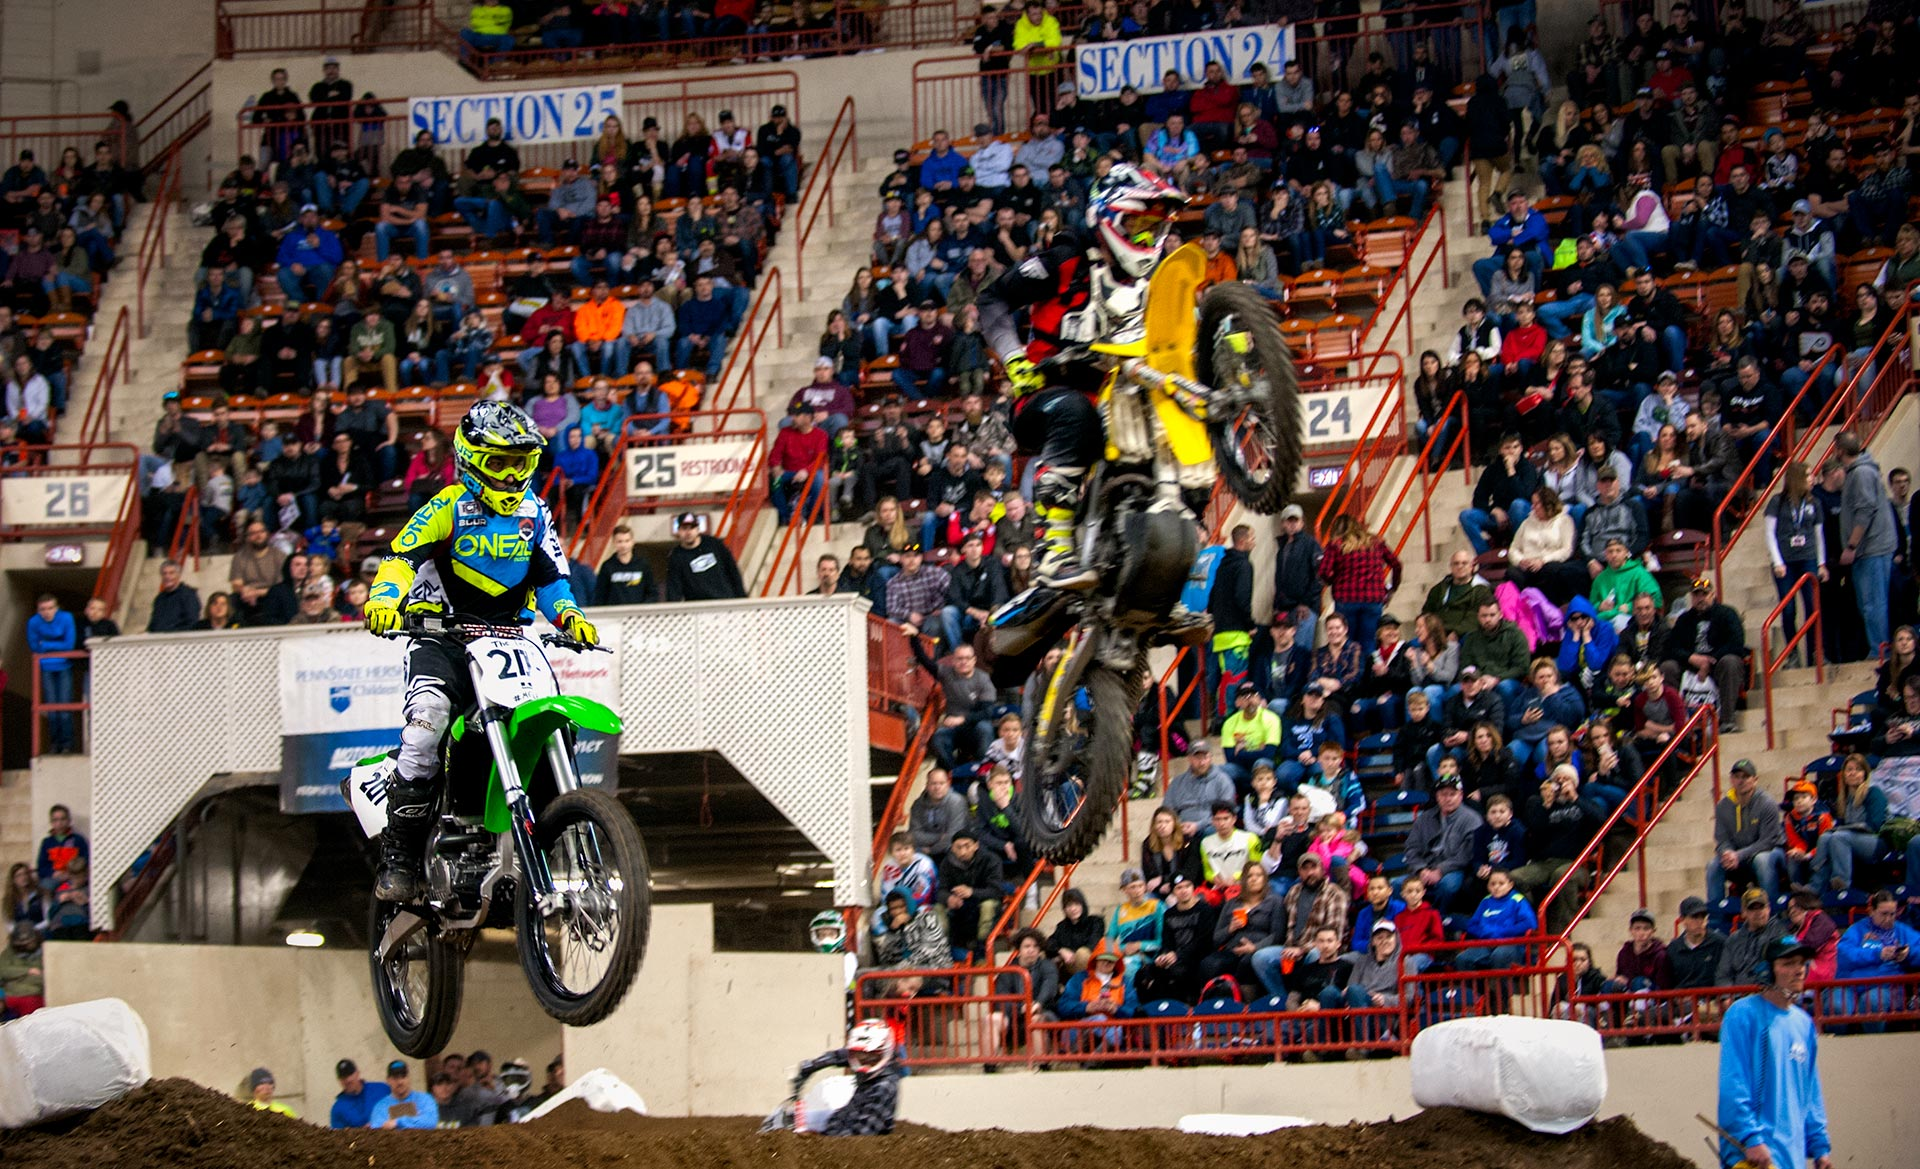 Bikes flying through the air at the arenacross races.